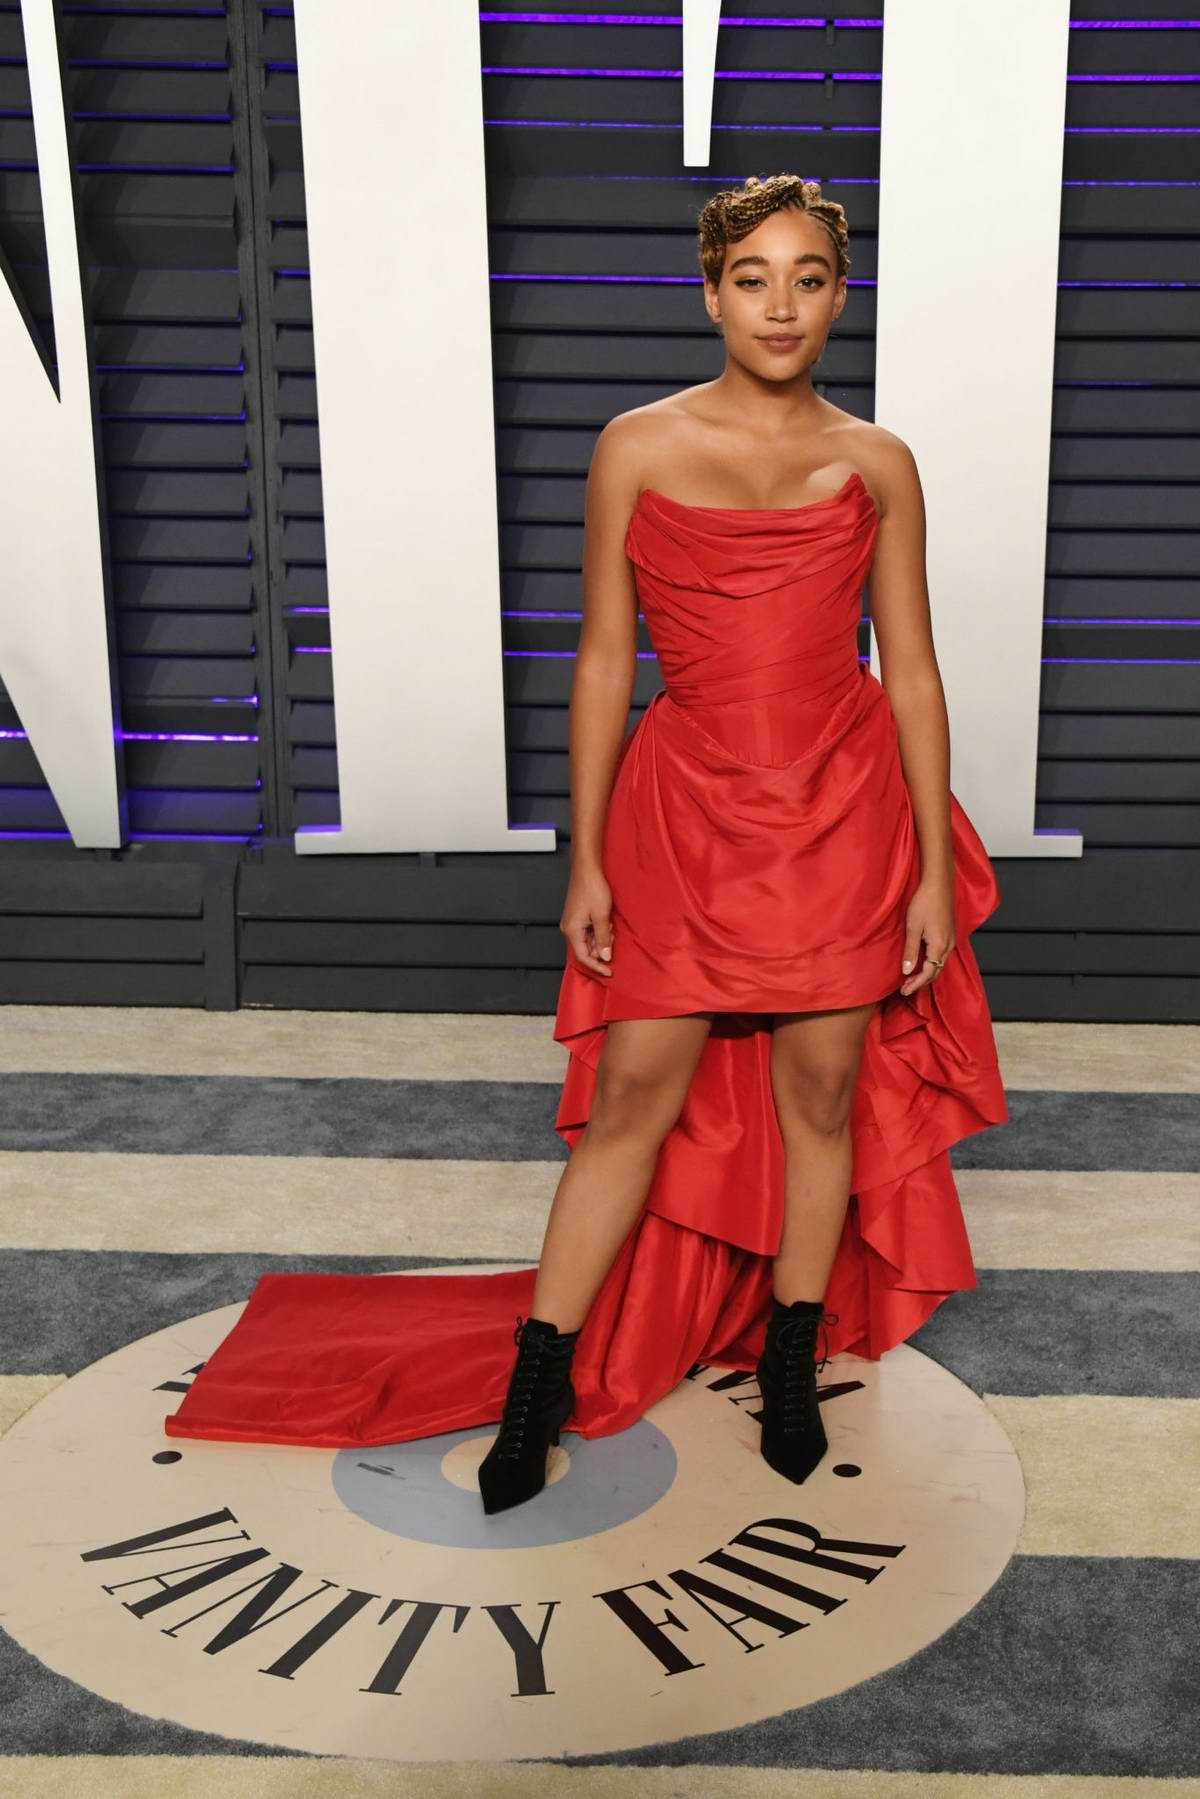 Amandla Stenberg attends the Vanity Fair Oscar Party at Wallis Annenberg Center for the Performing Arts in Beverly Hills, California